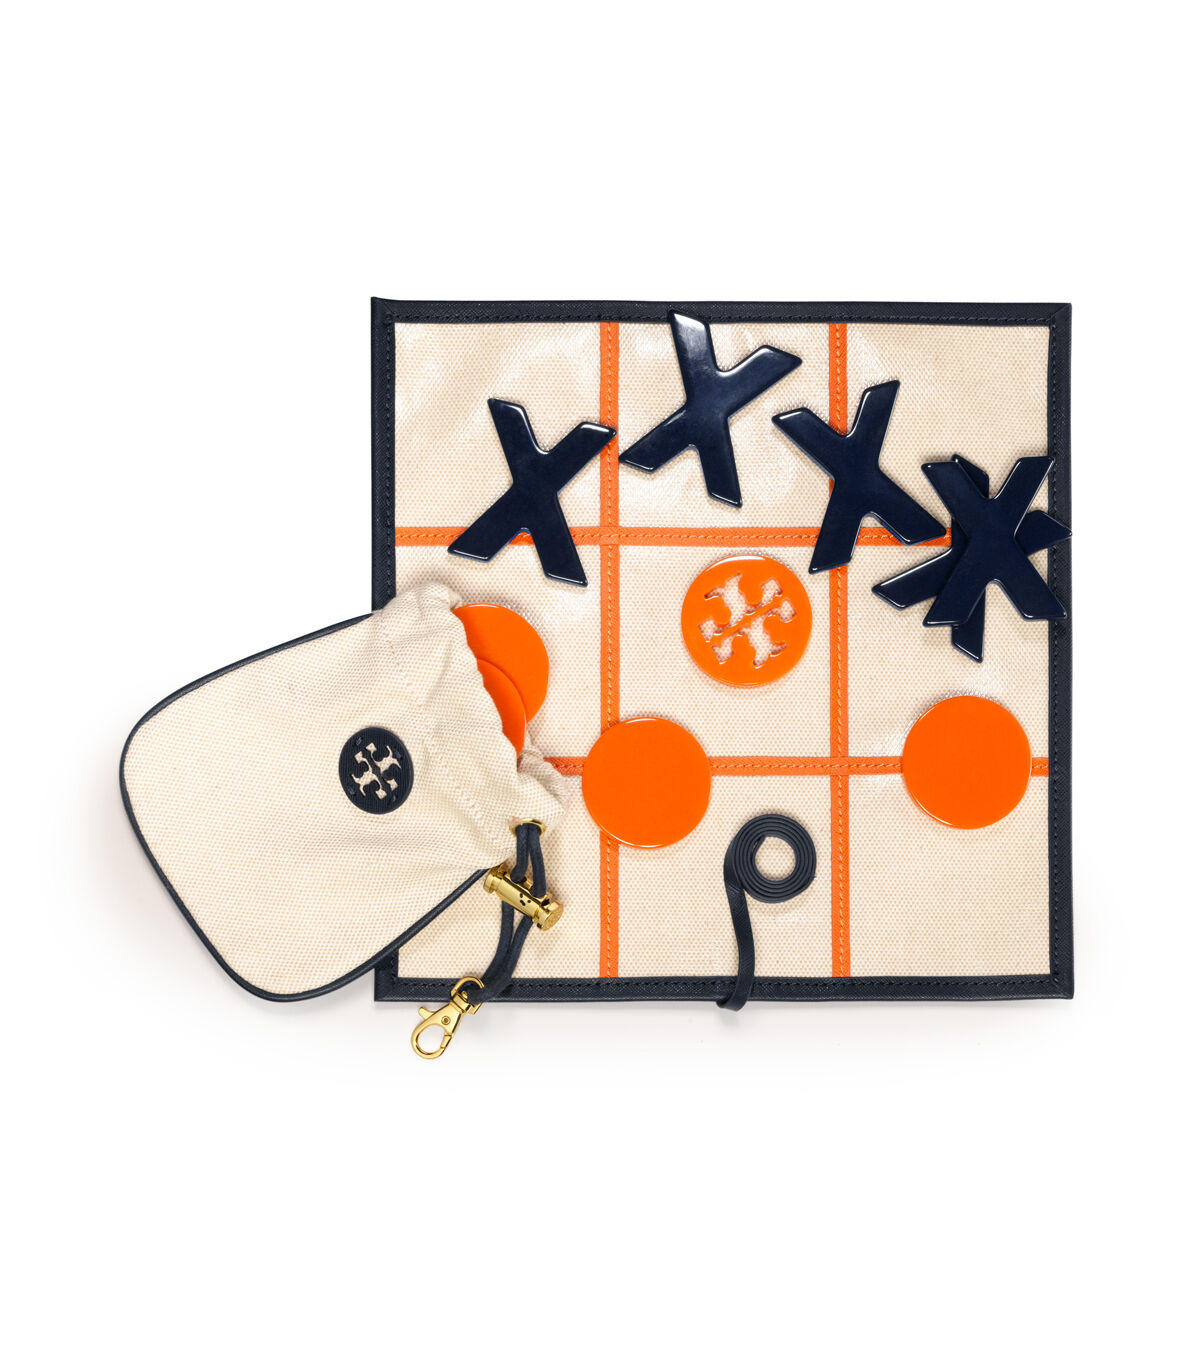 NEUF avec étiquette Tory Burch Tic Tac Toe Jeu, 100% authentique, home collection, rare